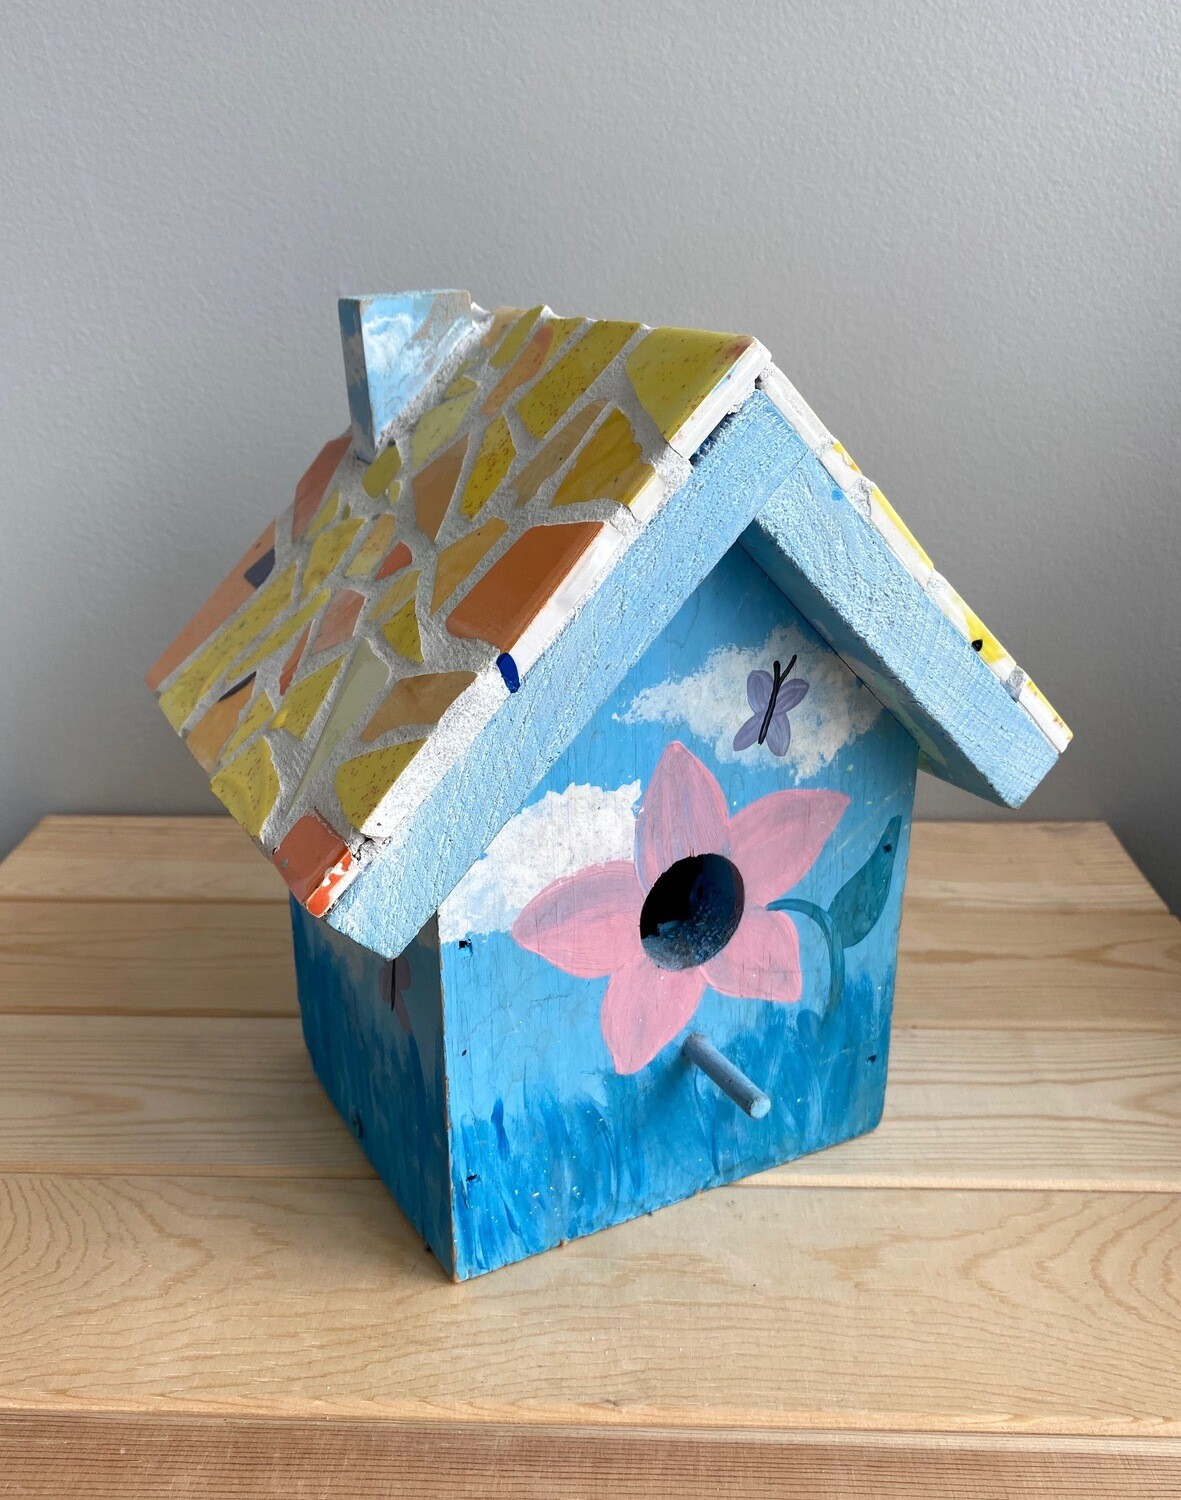 Mosaic Wooden Bird House - Sample Sale